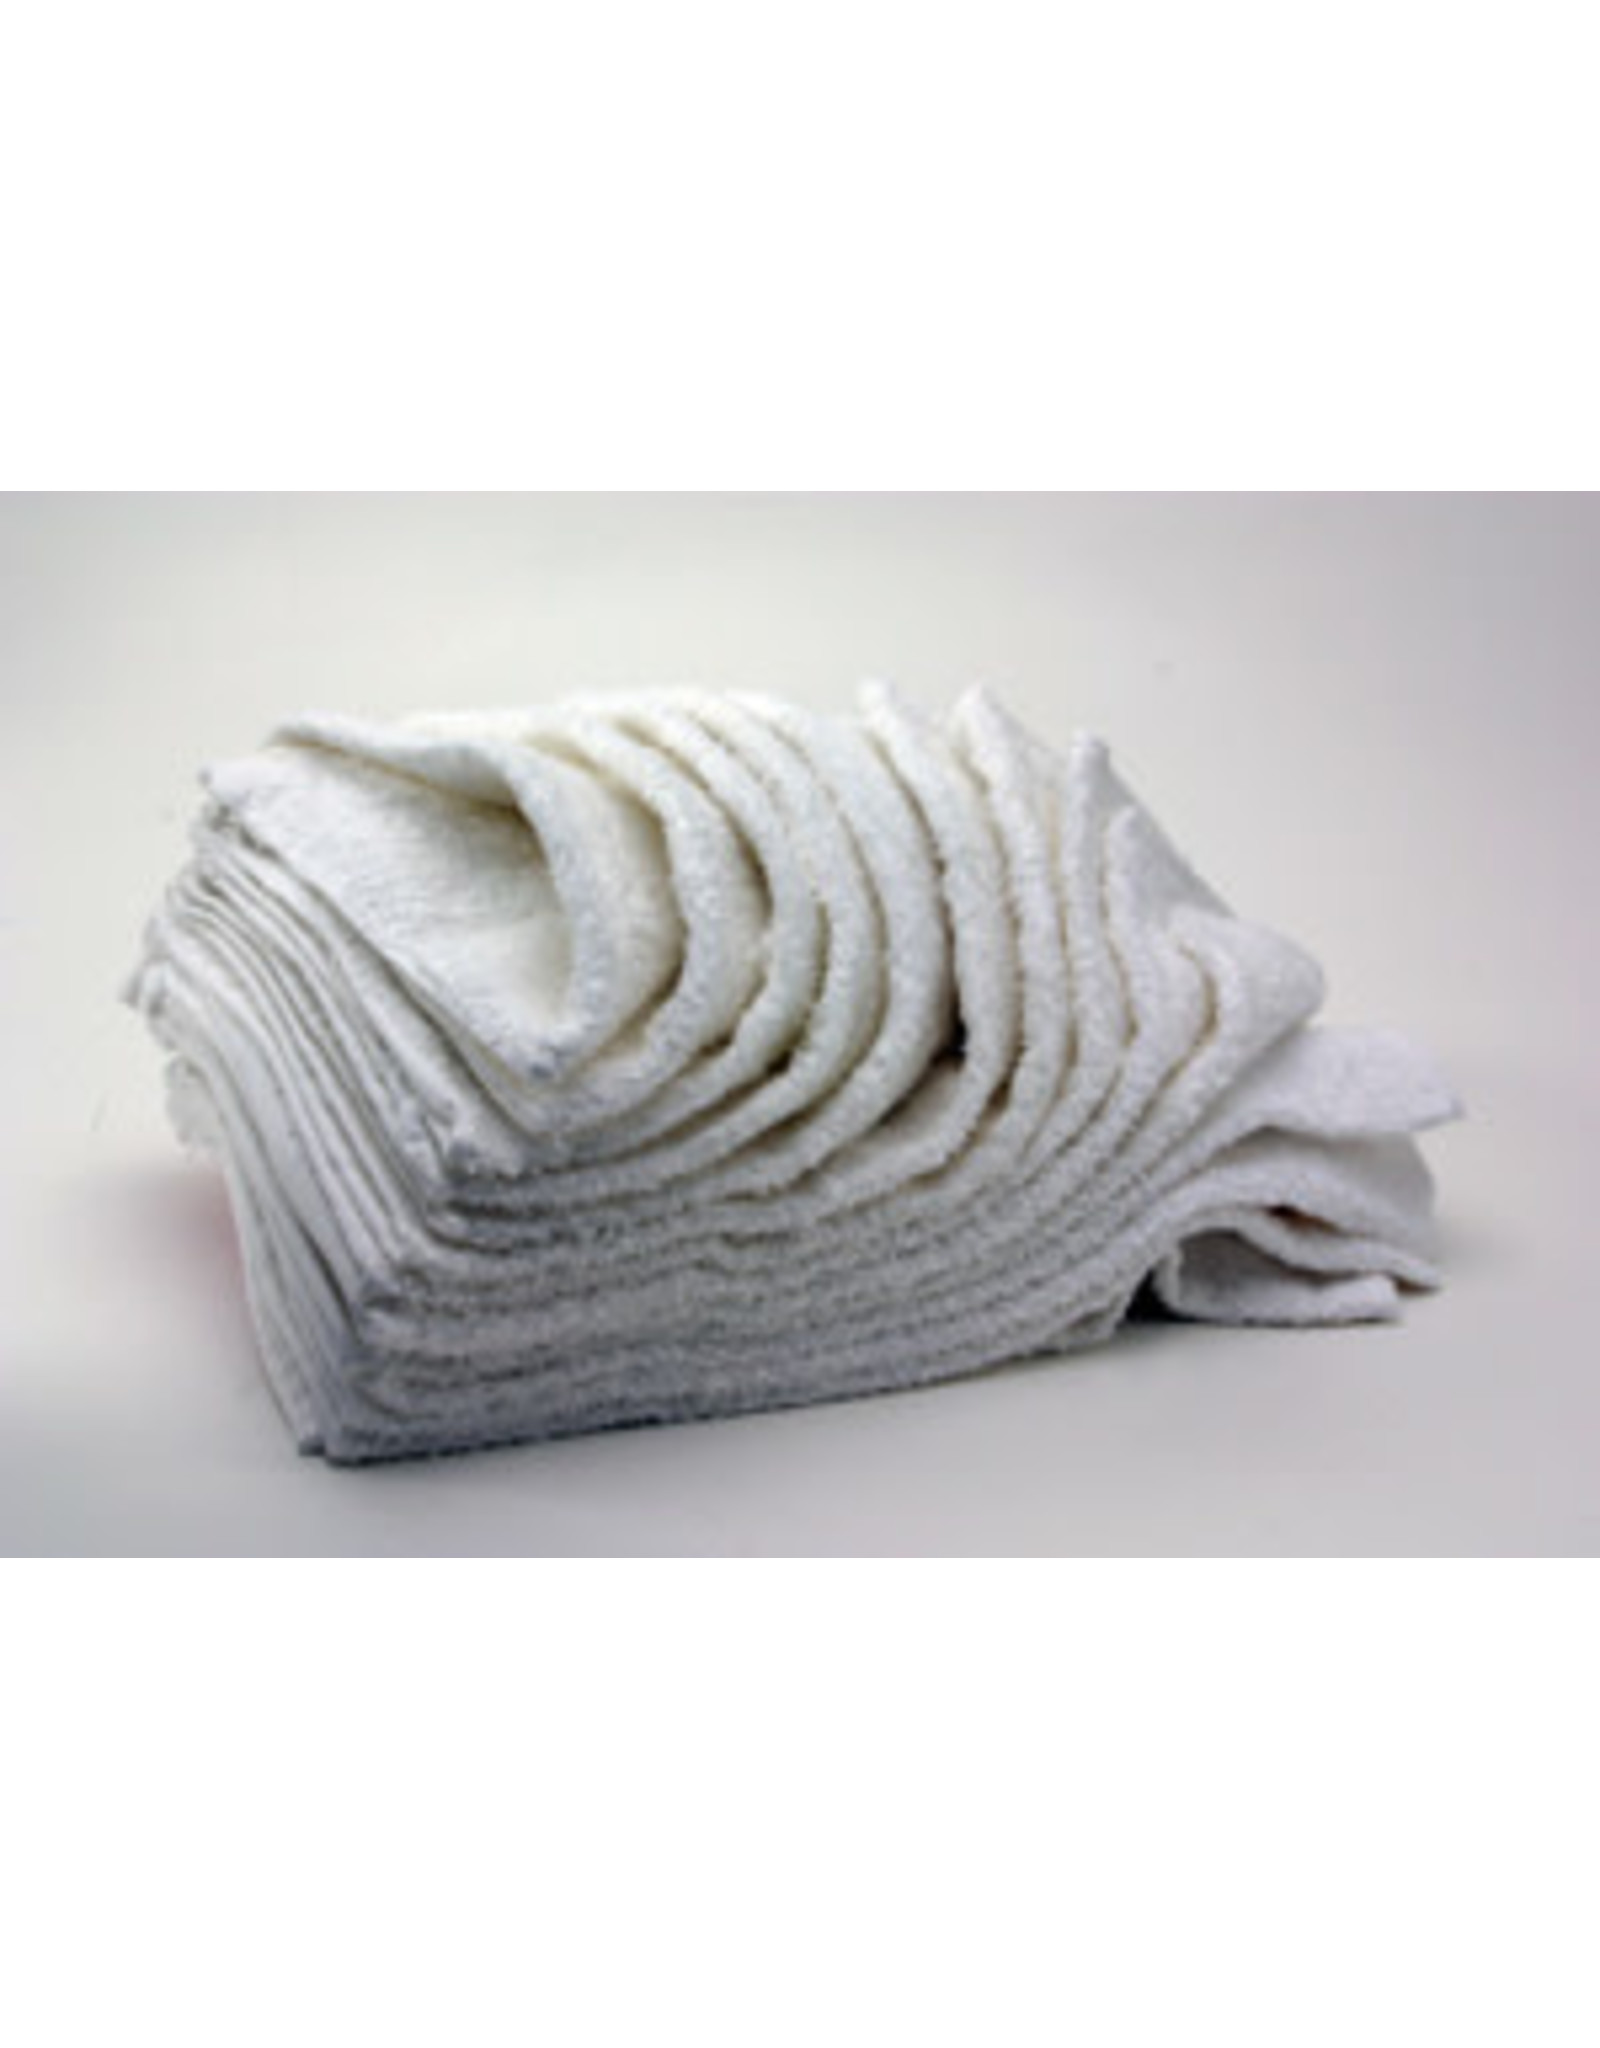 Sargent Steam Cleaners TERRY TOWELS 24-WHITE